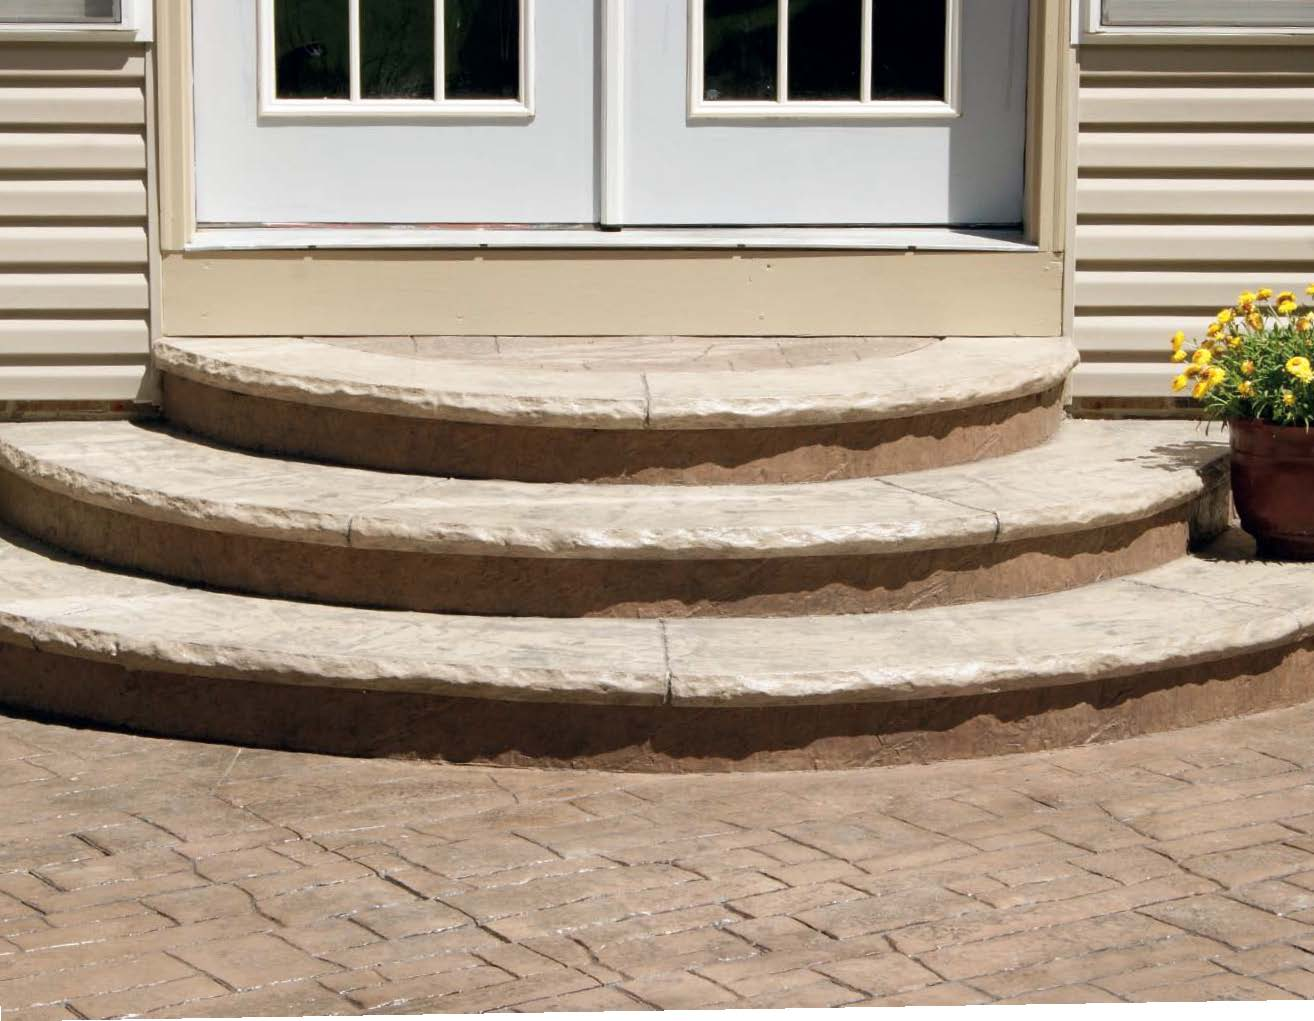 Half-round steps created by Jason Geiser and his crew at a home in Medina, Ohio.